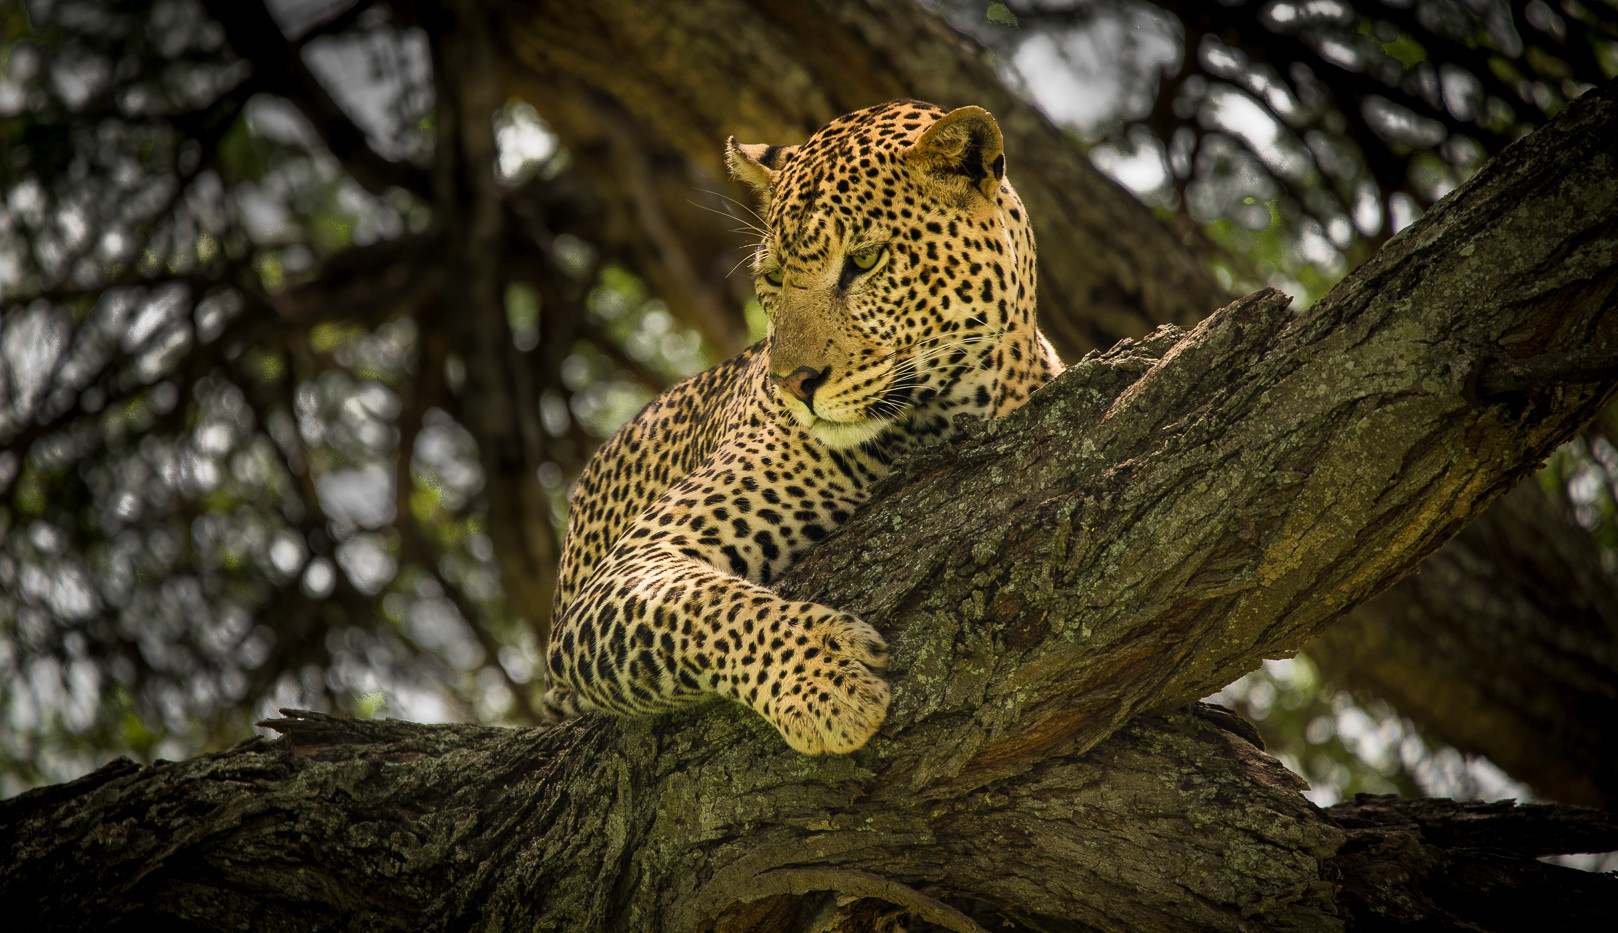 Leopard scanning area from a tree